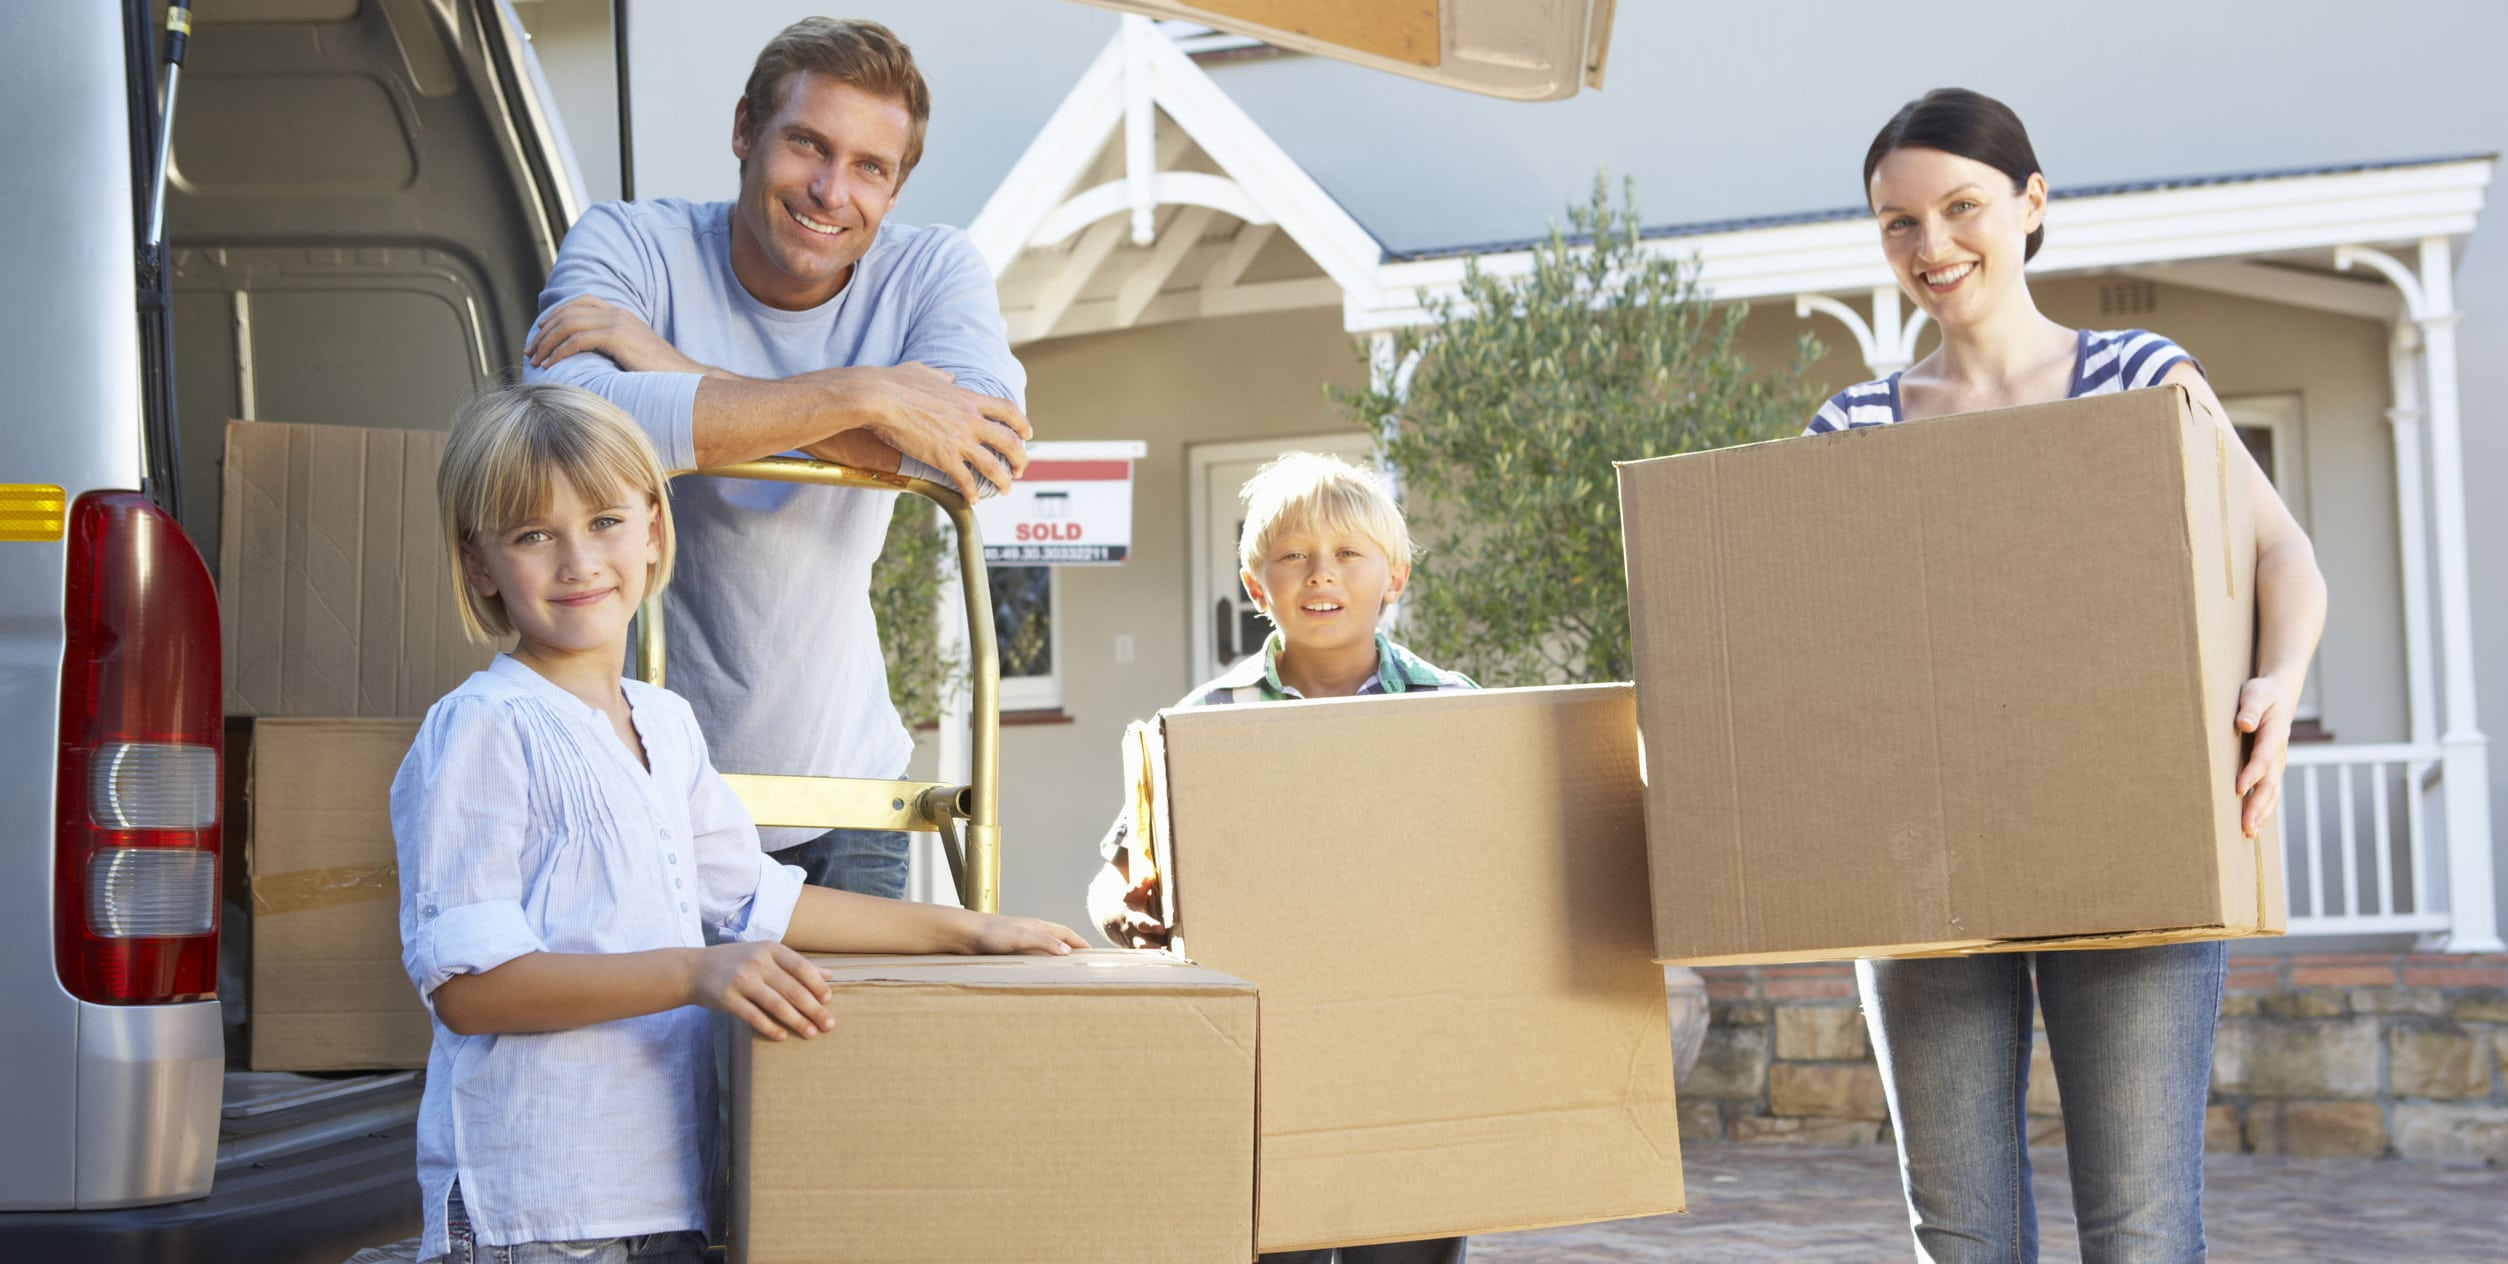 Family standing in front of house with moving boxes